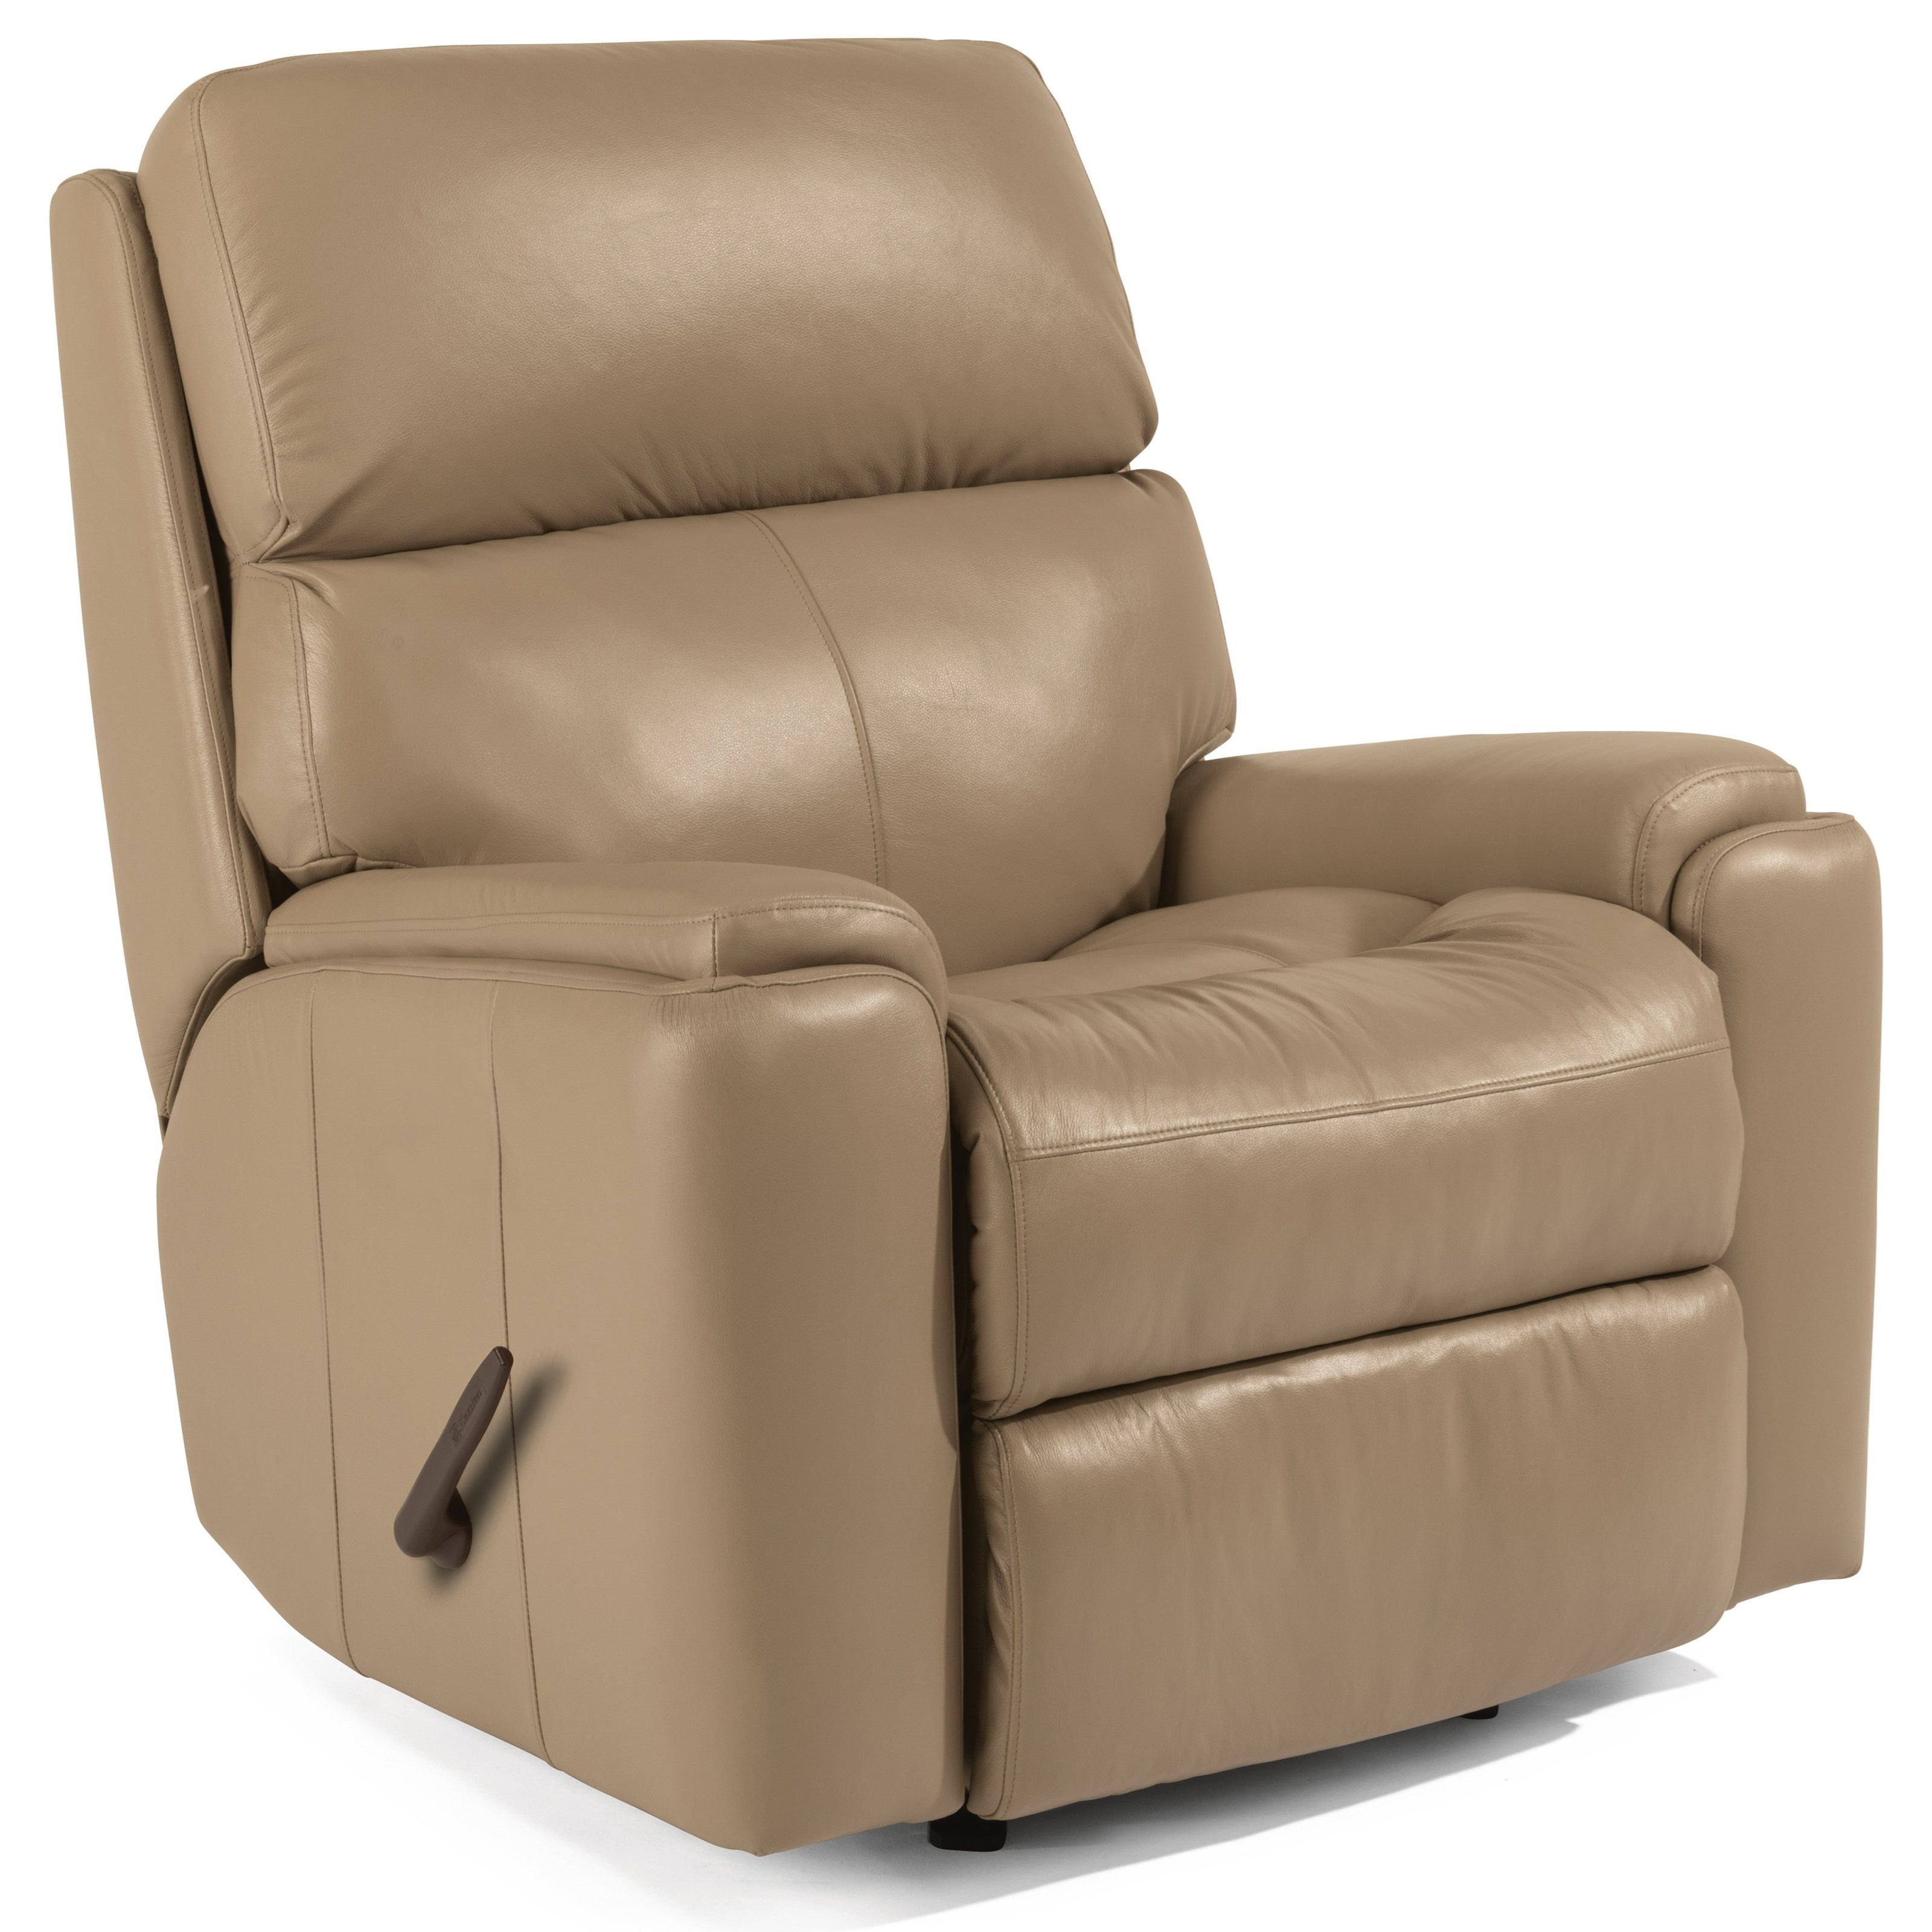 Rio Rocking Recliner by Flexsteel at Williams & Kay